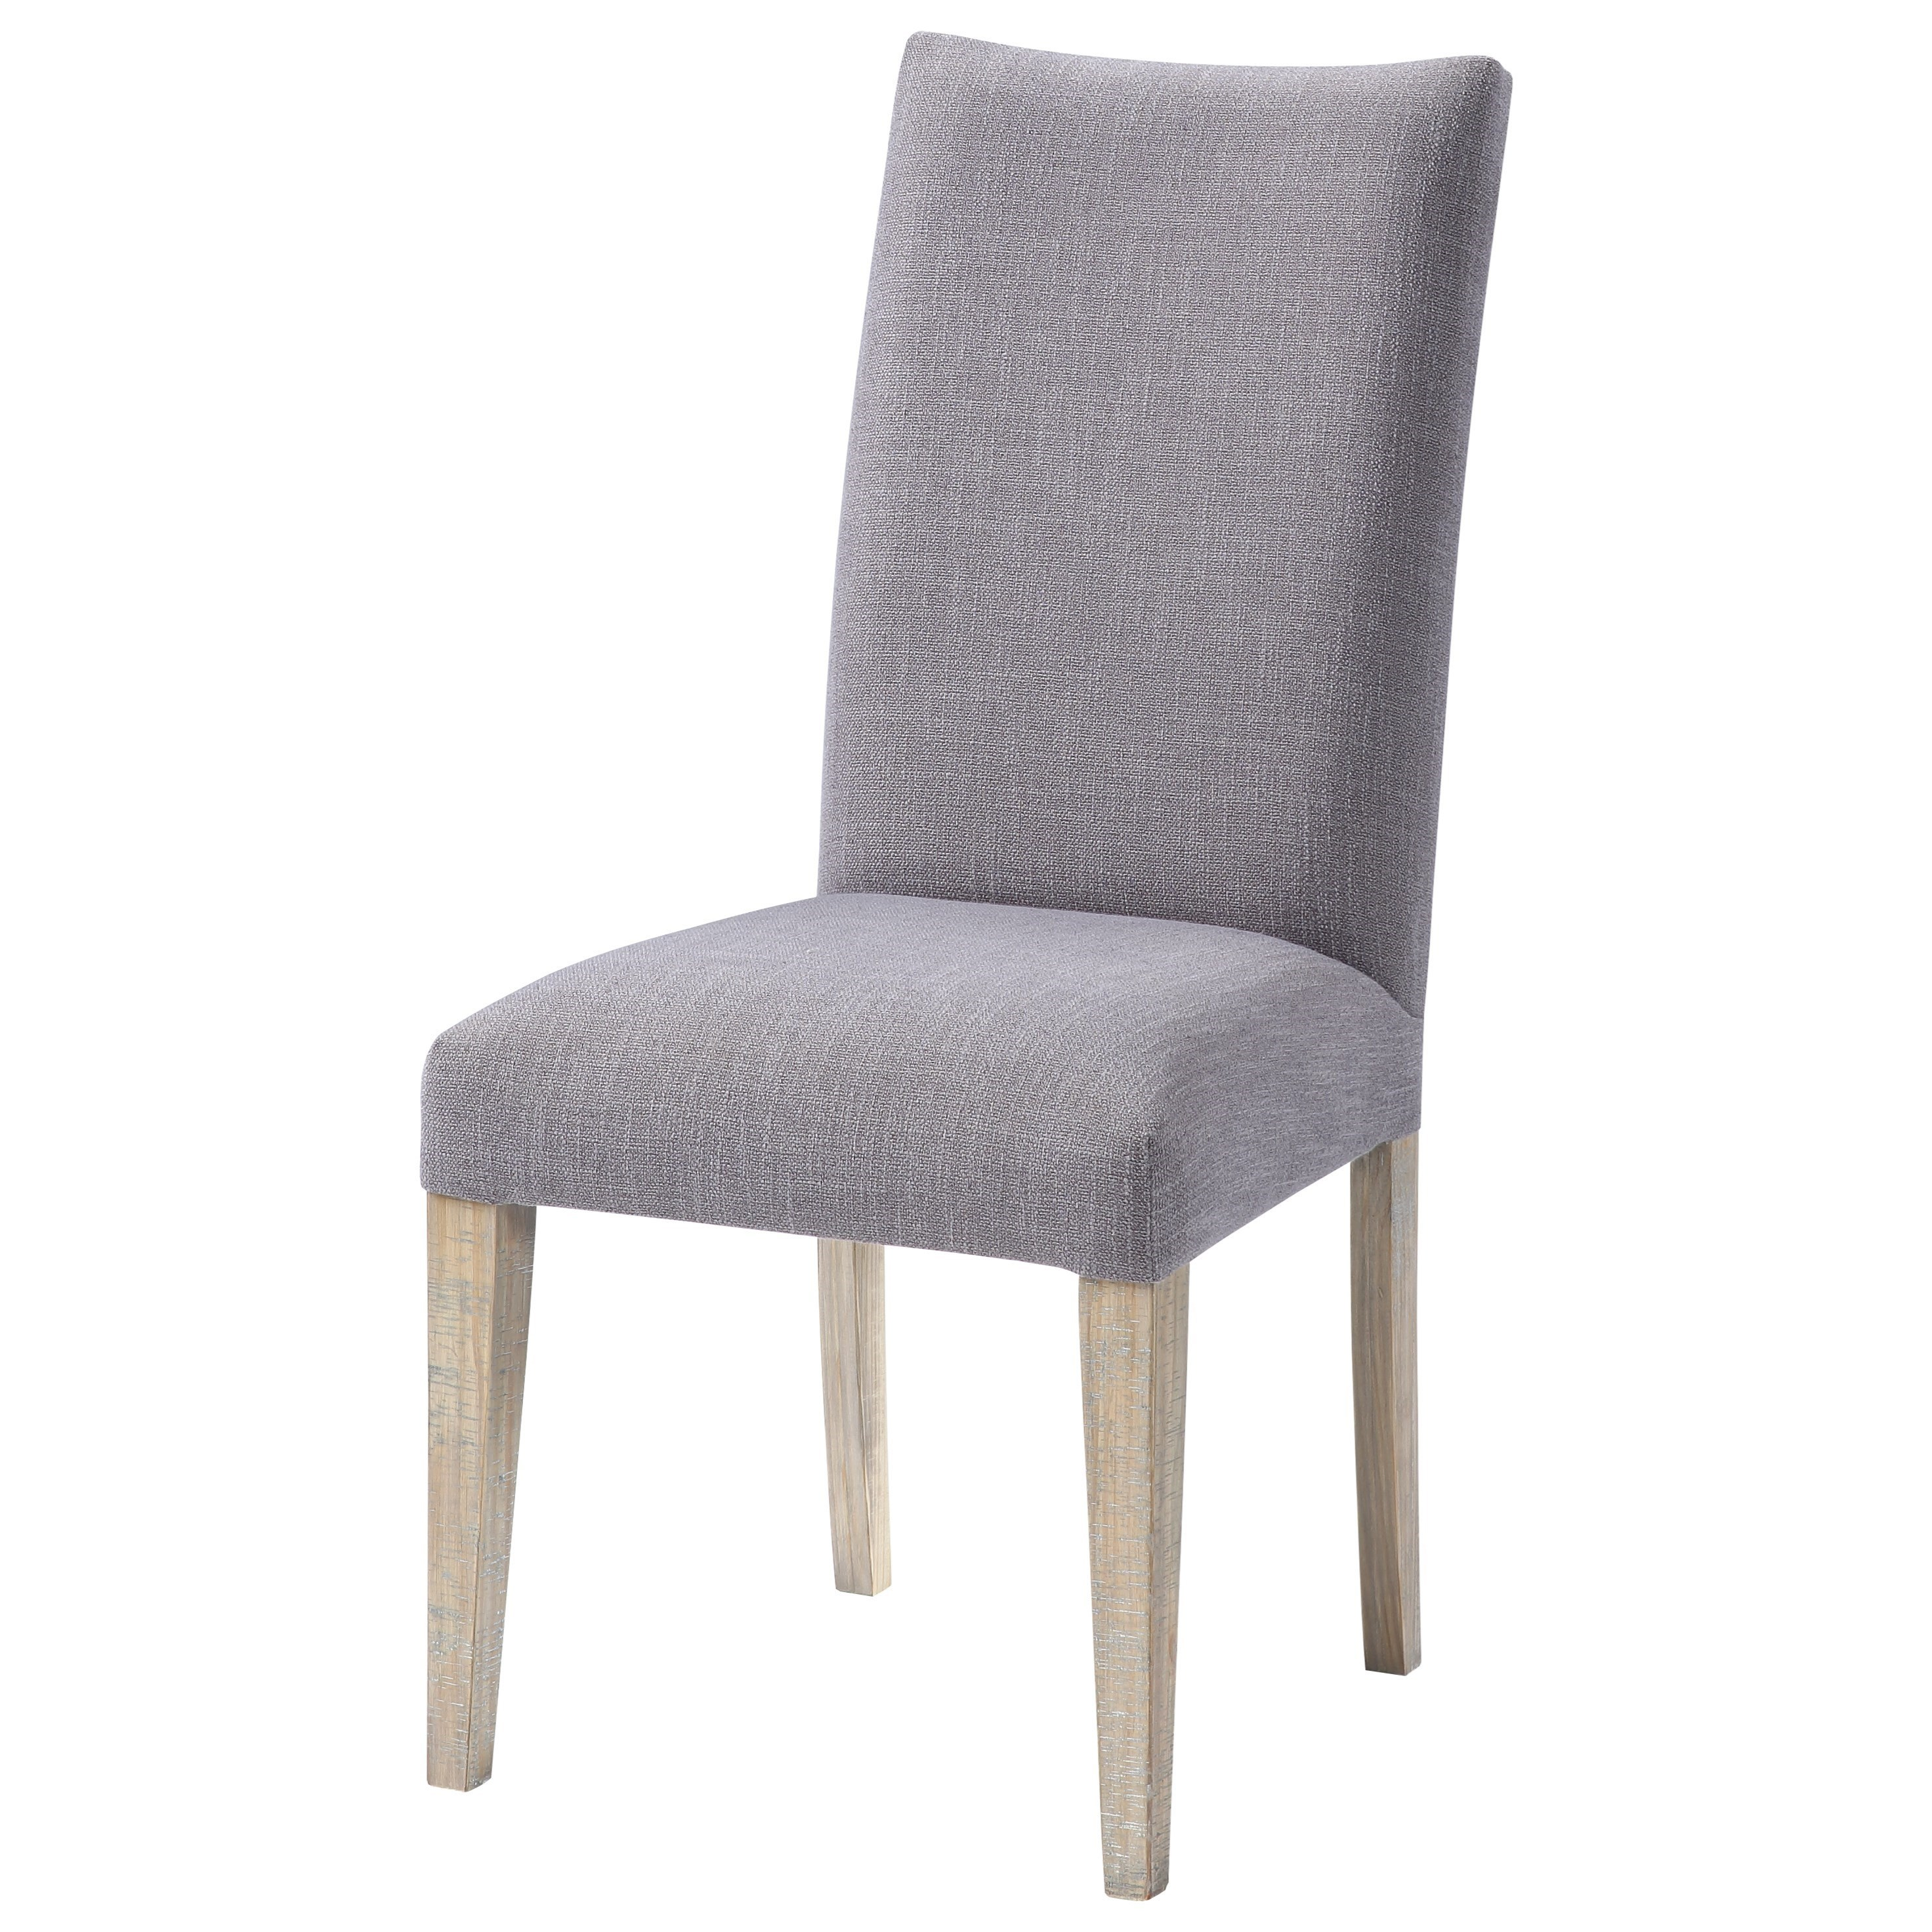 Barrister Dining Chair by C2C at Walker's Furniture